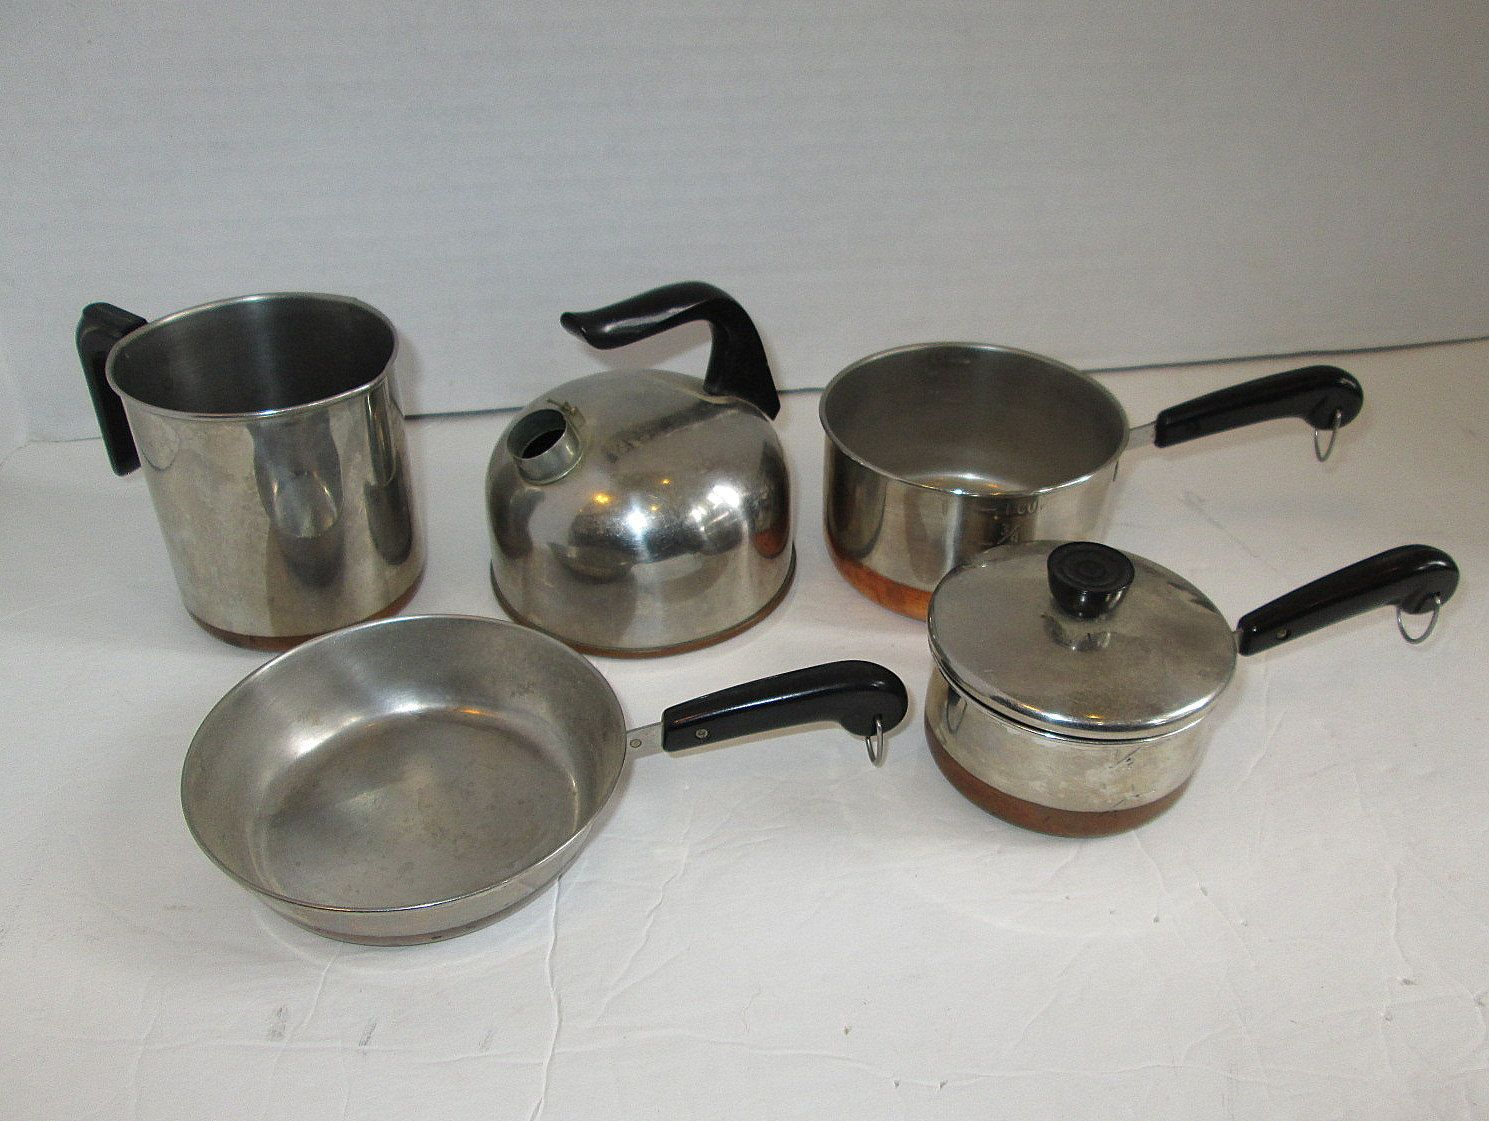 Vintage Revere Ware Copper Bottom Pots And Pans Cookware Set For